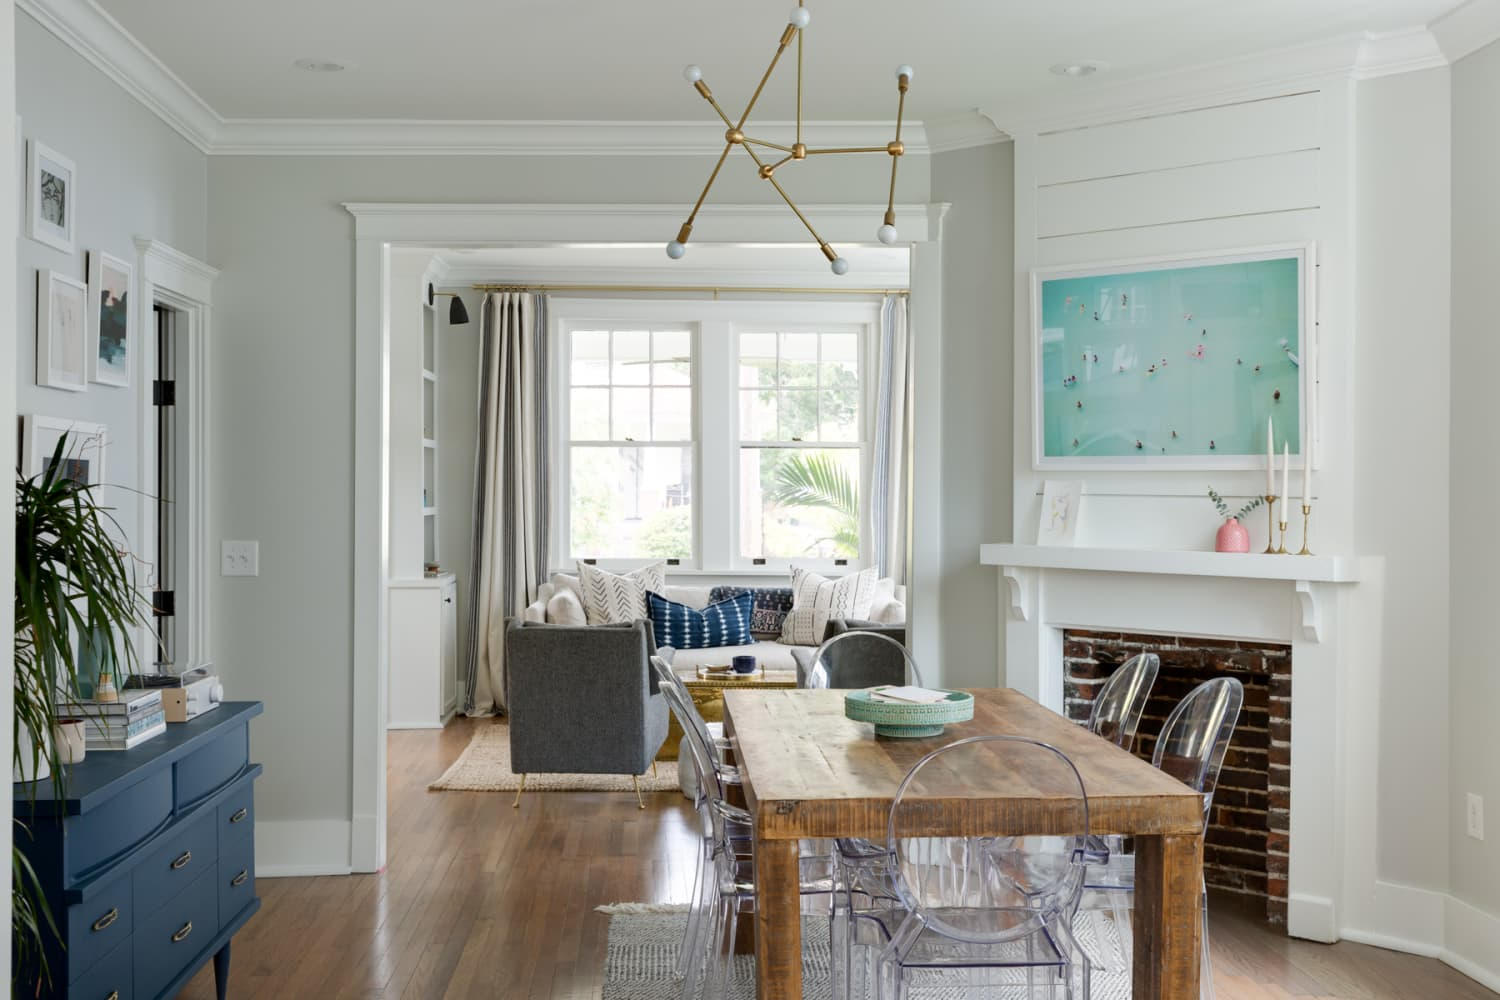 The First Thing You Should Buy for Your New Home, According to Interior Designers